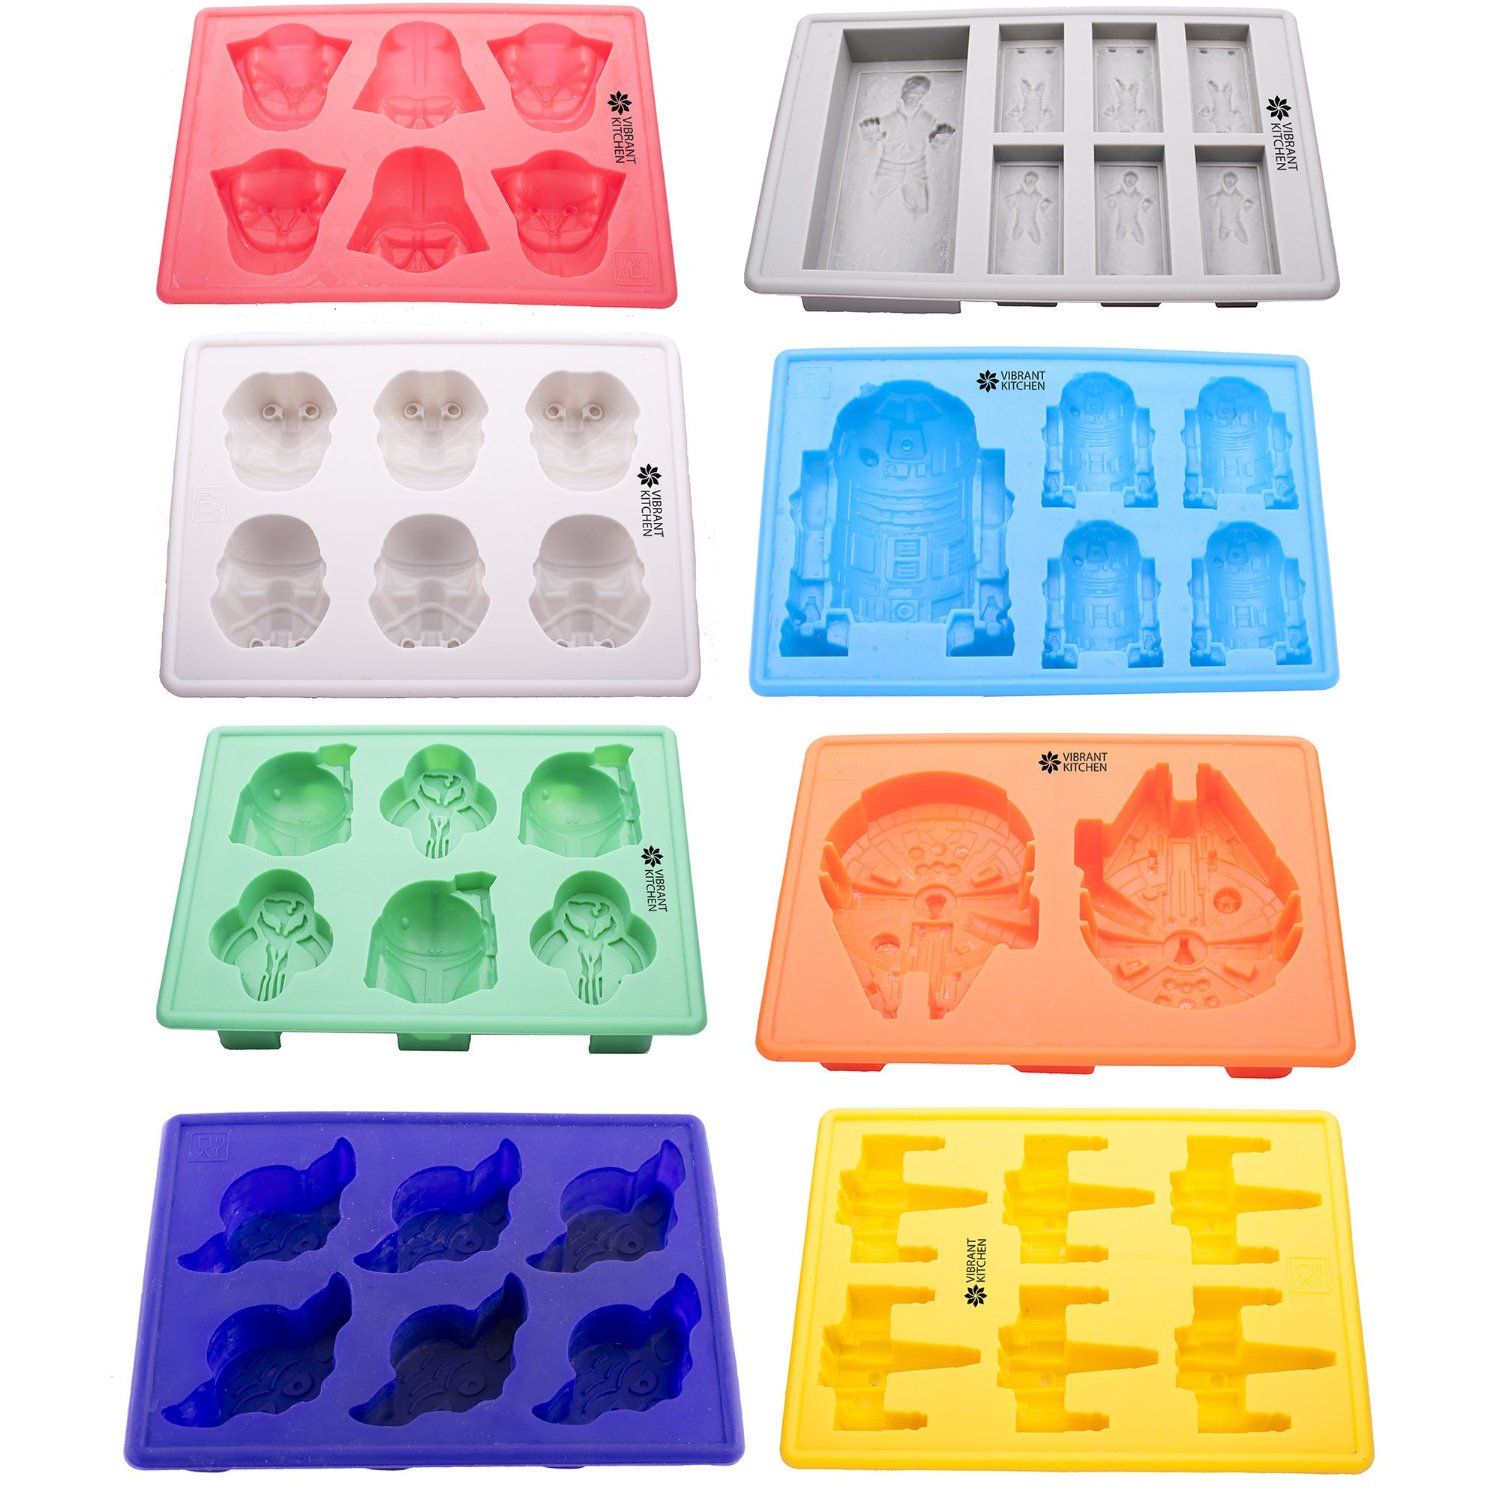 Star Wars Set of 8 Ice Cube Trays/Silicone Molds